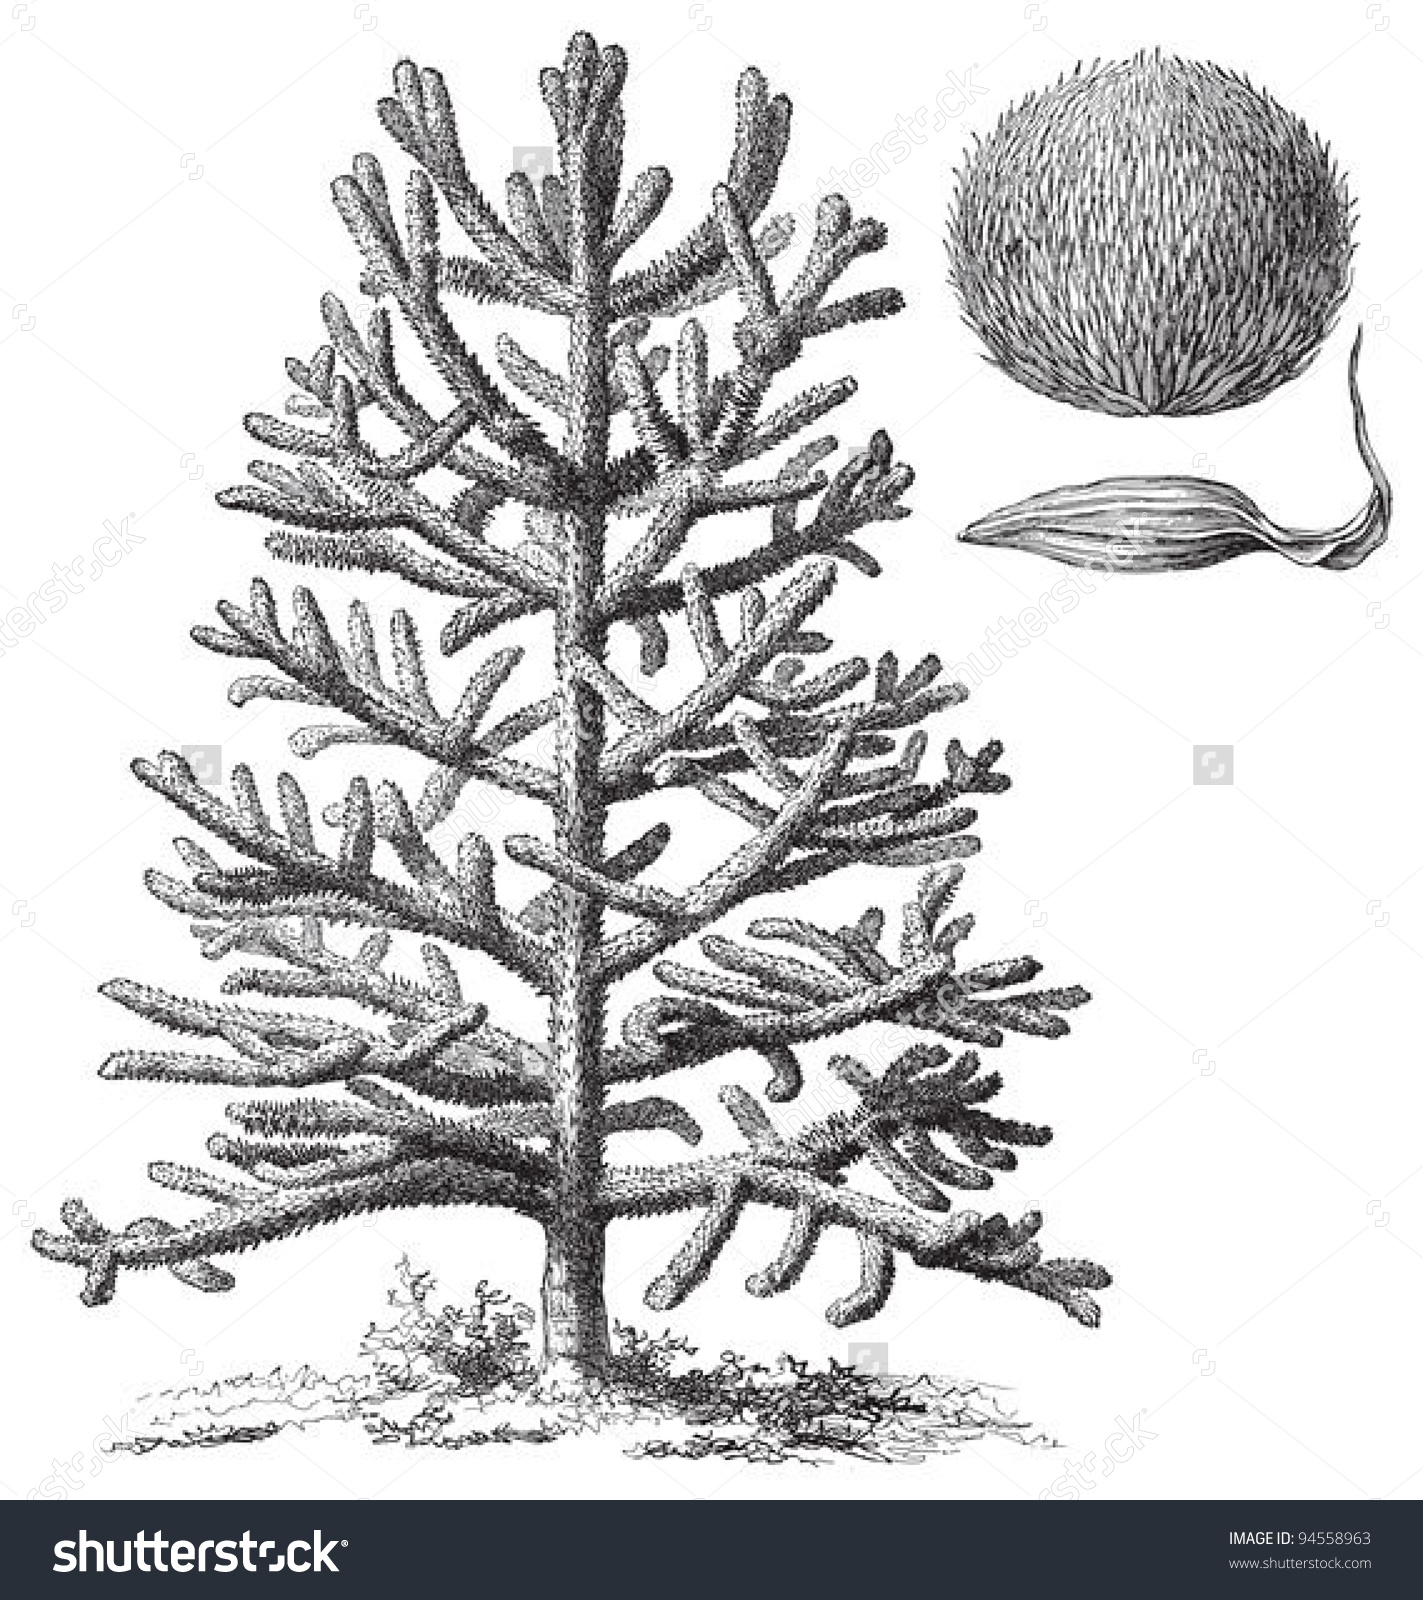 Monkeypuzzle Tree Araucaria Araucana Vintage Illustration Stock.